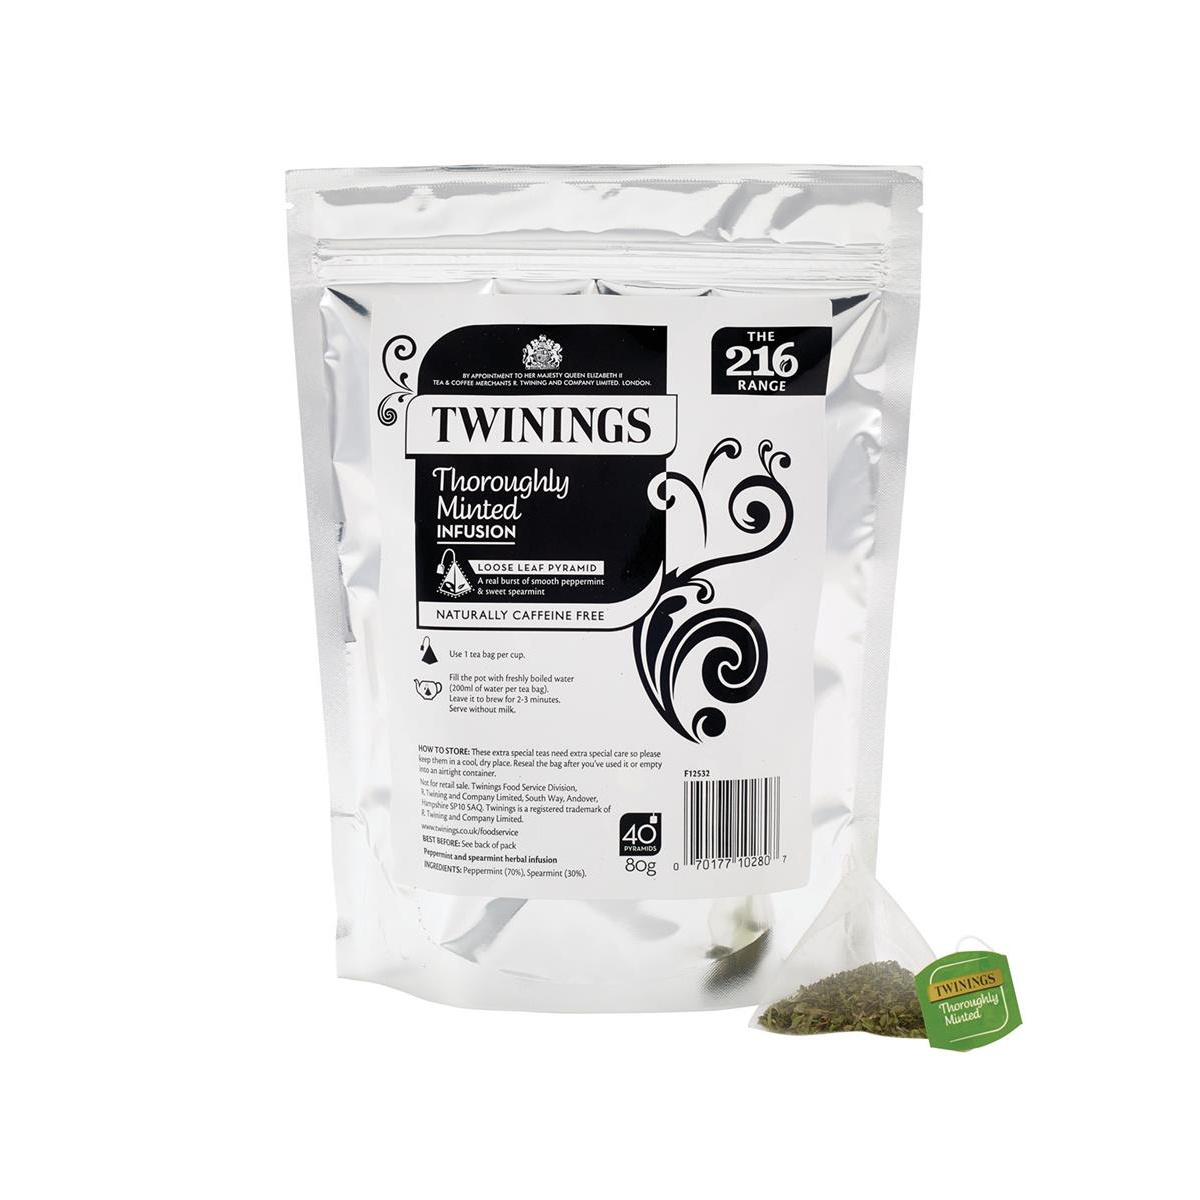 Twinings Tea Luxury Pyramid Teabags Thoroughly Minted Pouch Ref F12532 [40 Bags]